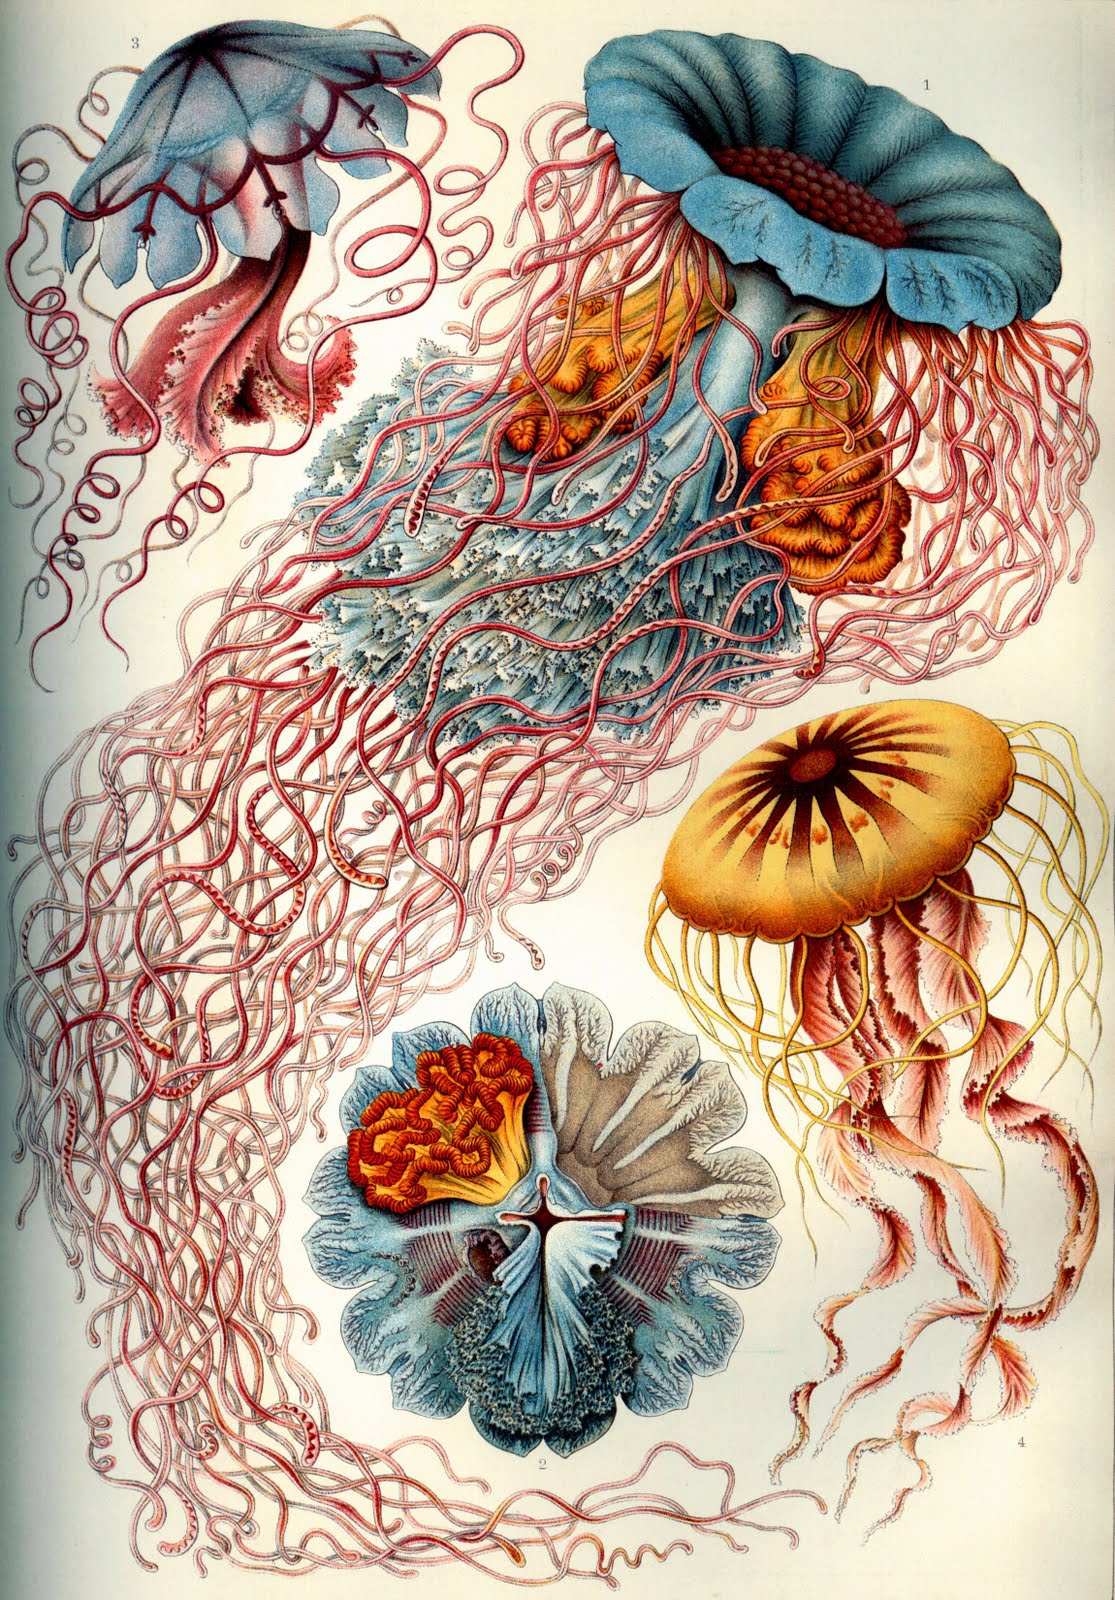 Vintage jellyfish illustration - photo#5